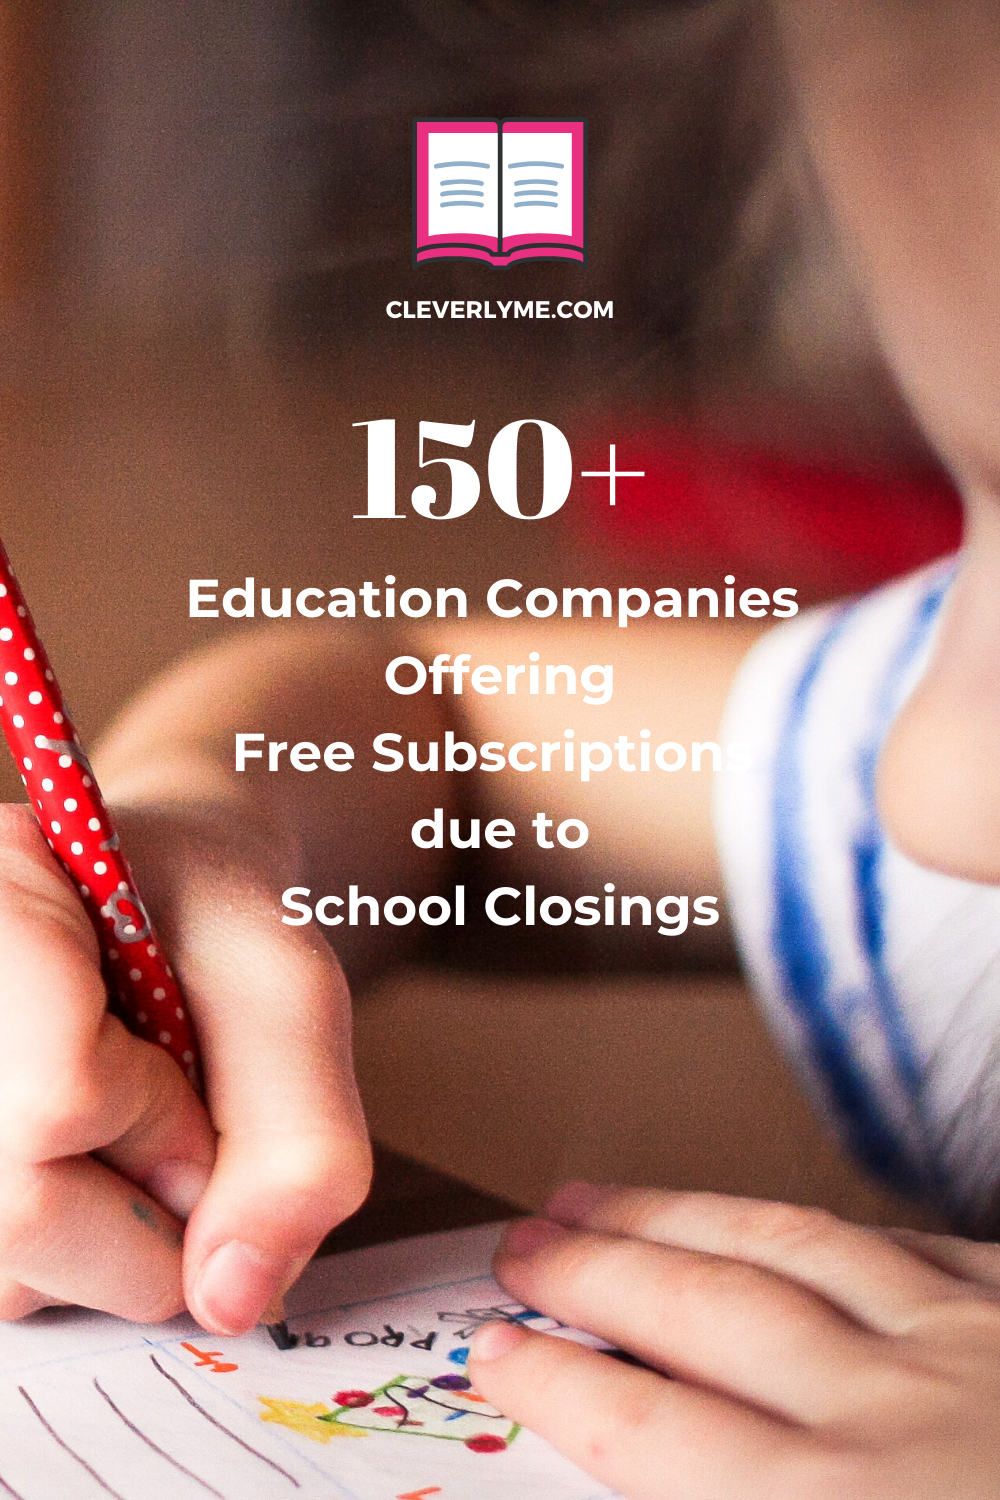 Looking for free subscriptions to help during school closures? Check out this list of Education Companies Offering Free Subscriptions due to School Closings. List found at CleverlyMe.com